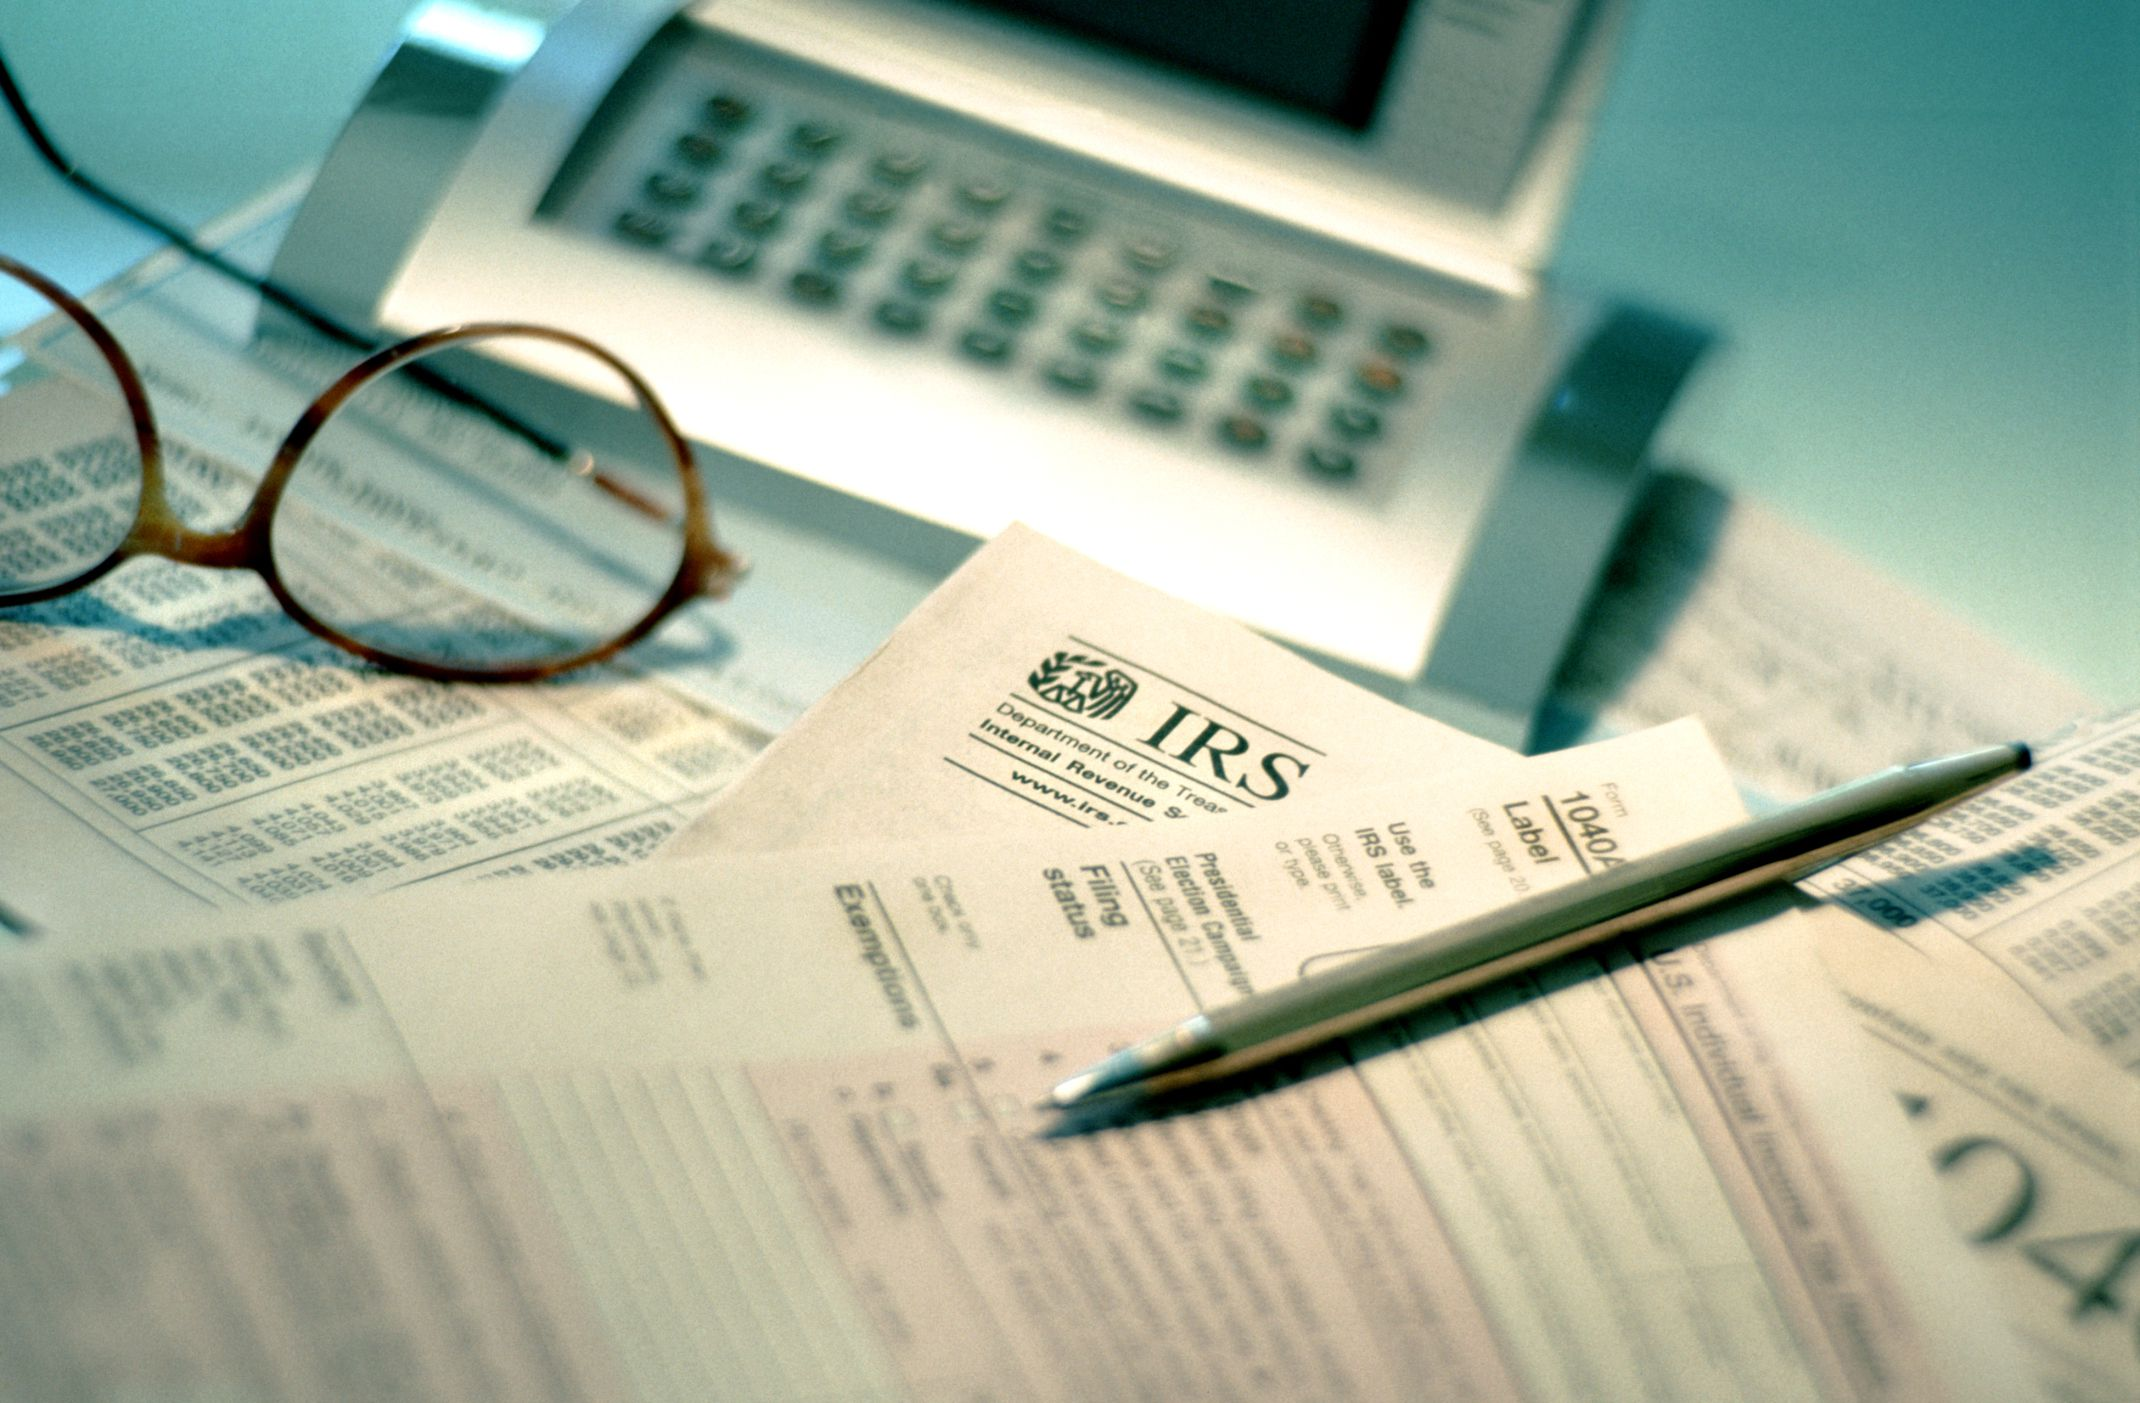 Accounting & Tax Financial Services Inc image 6